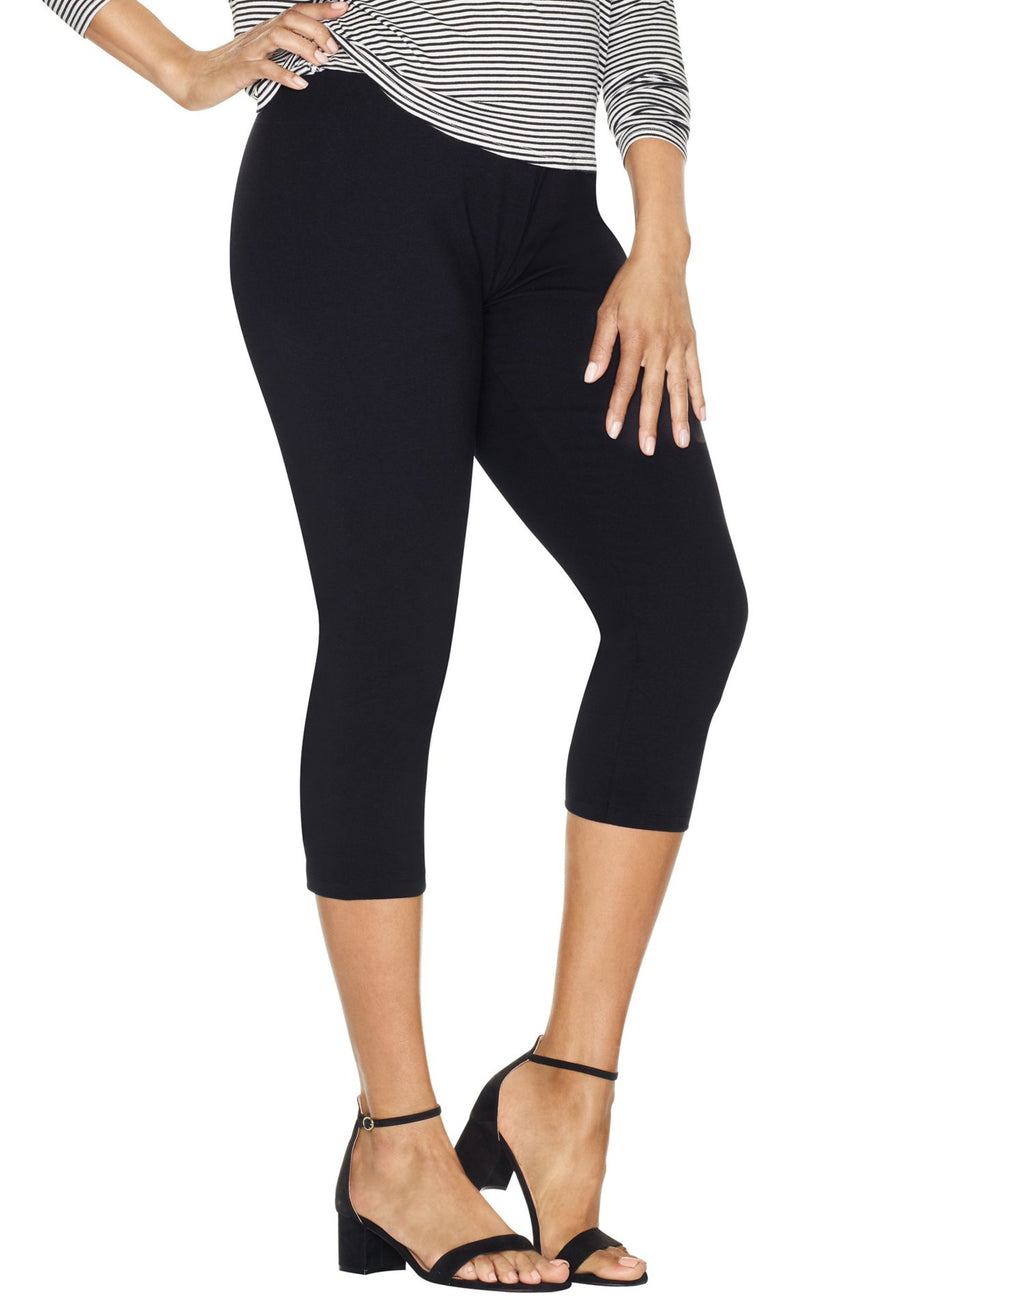 Just My Size Women`s Stretch Cotton Capri Leggings